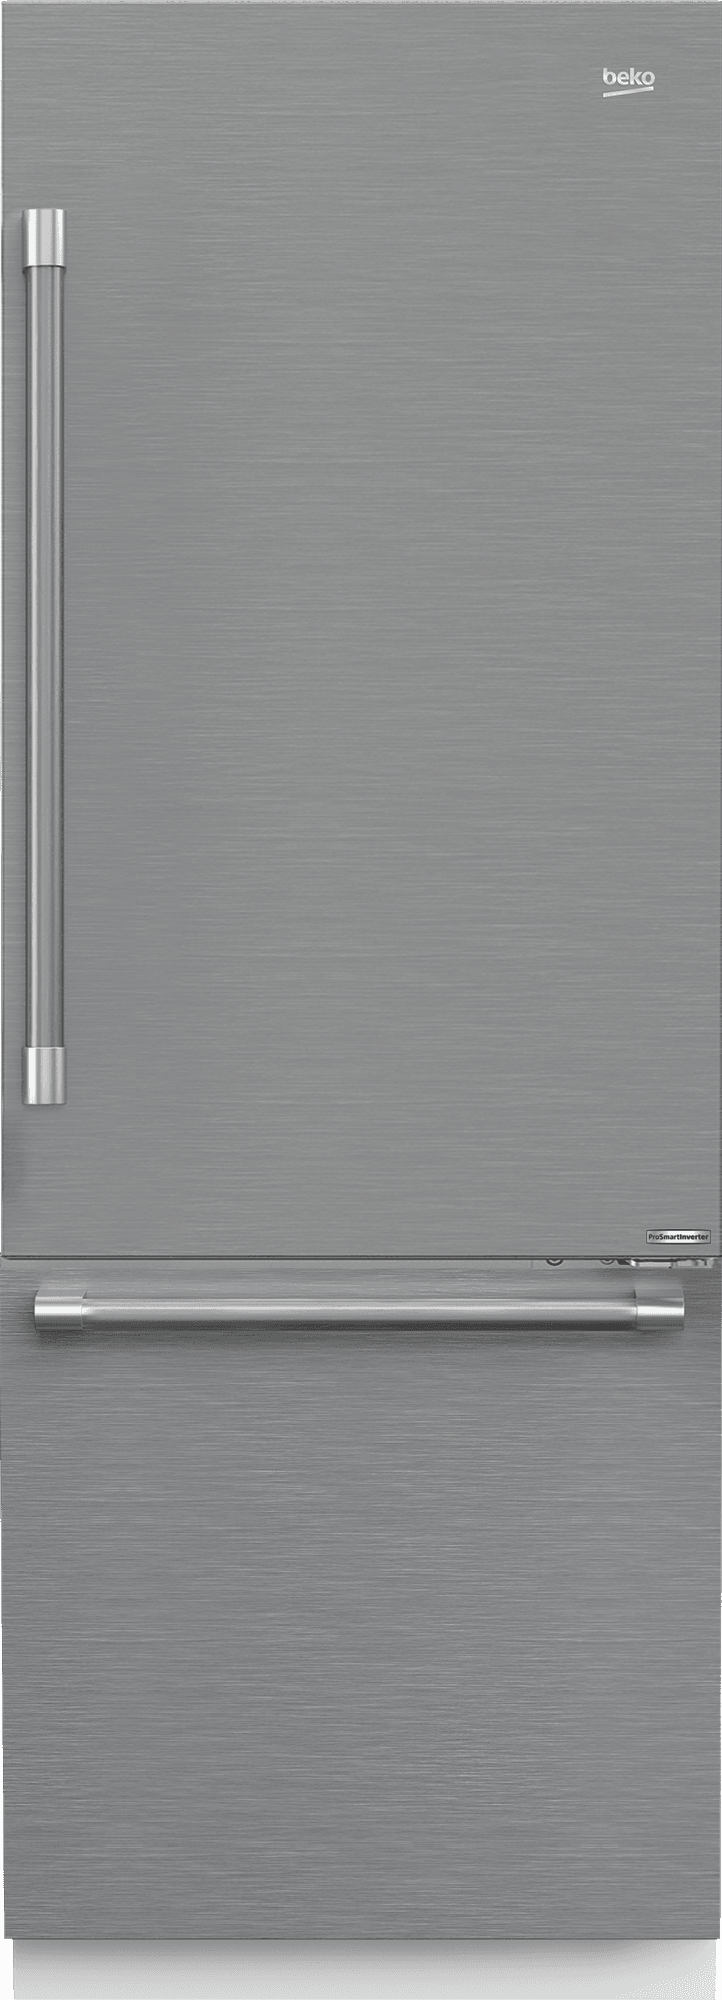 "Load image into Gallery viewer, Beko BBBF3019IMWESS 30"" Stainless Steel Freezer Bottom Built-In Refrigerator With Auto Ice Maker, Water Dispenser"